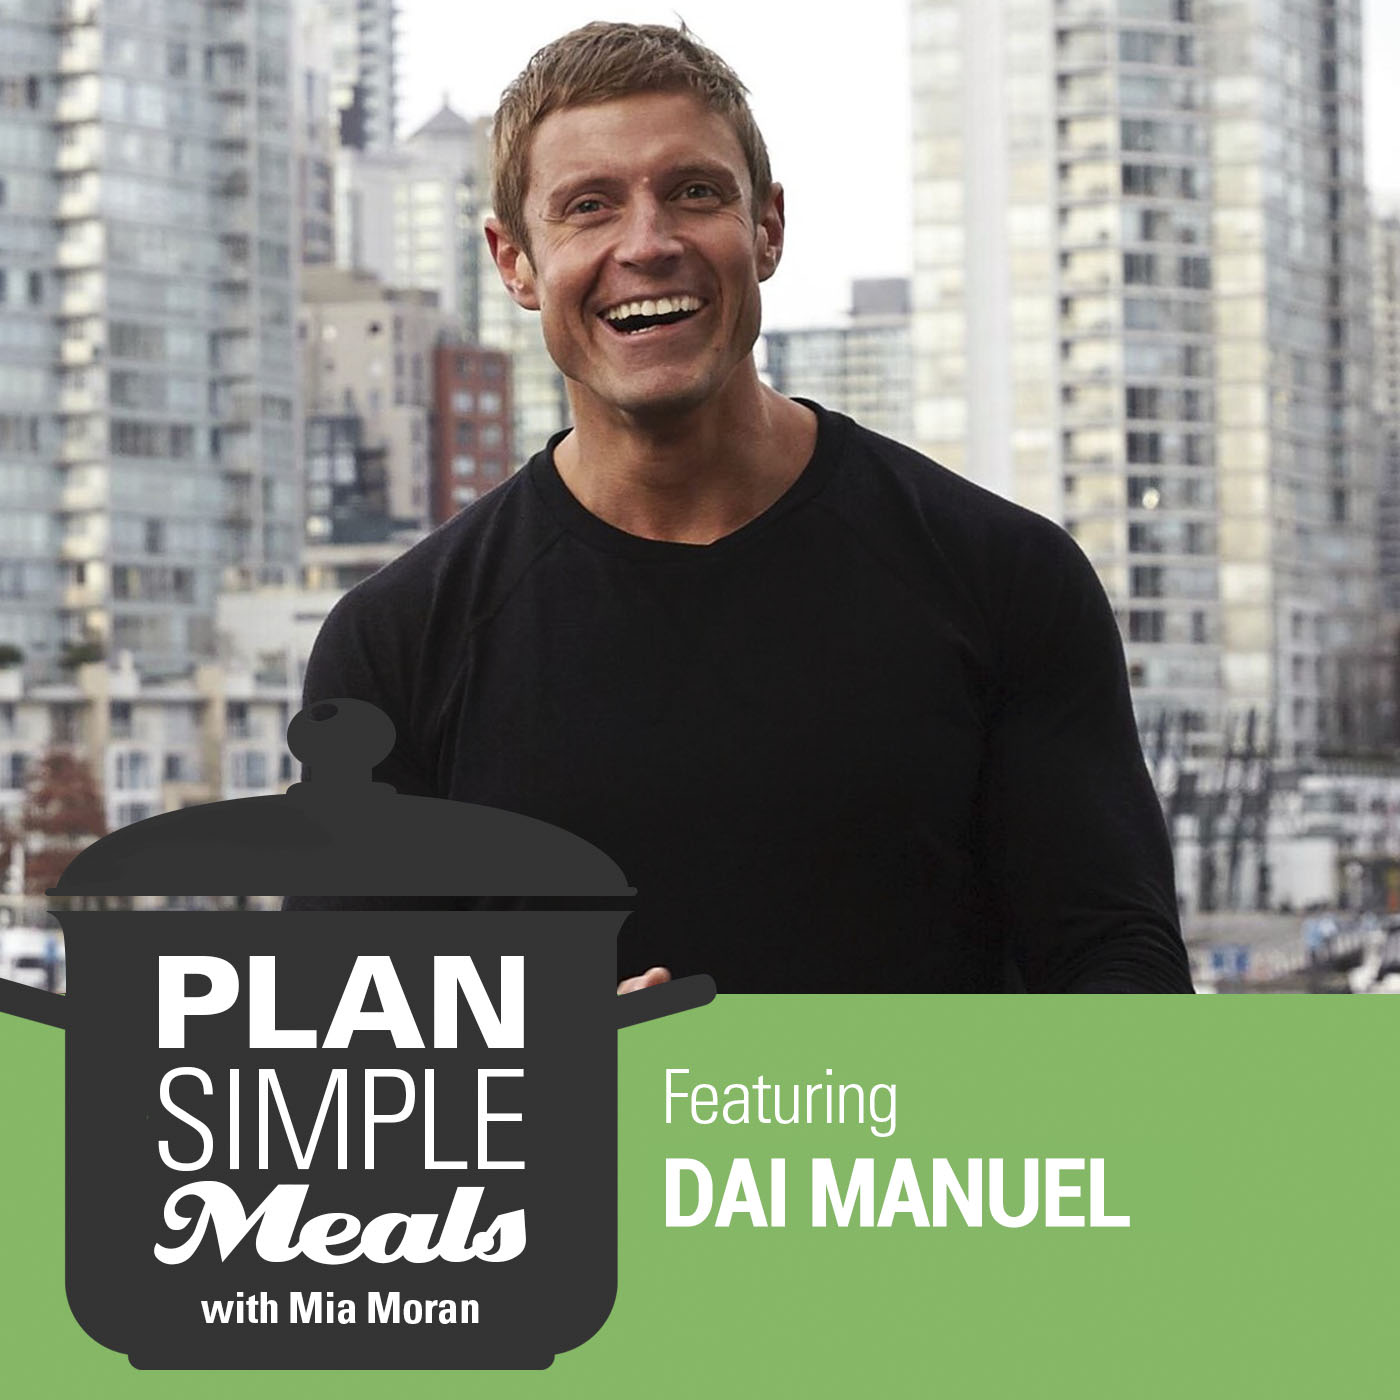 The Importance Of Keeping It Fun With Dai Manuel